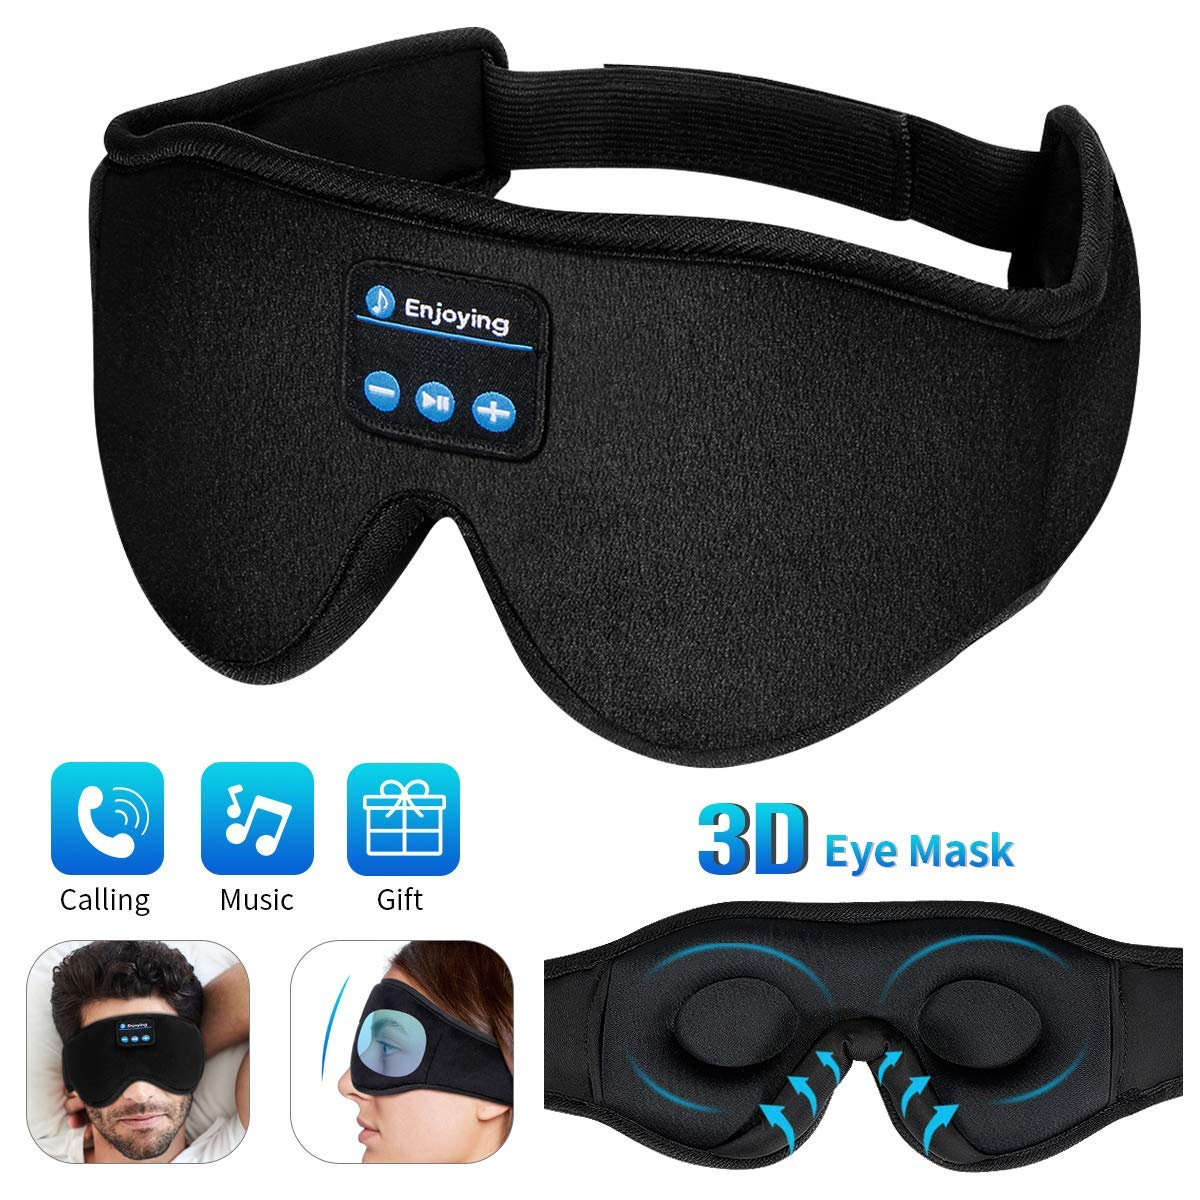 Sleep Headphones Bluetooth Eye Mask,WU-MINGLU 3D Wireless Music Eye Mask,Eye Shade Cover with Thin & HD Micro Speaker Adjustable Washable for Side Sleepers